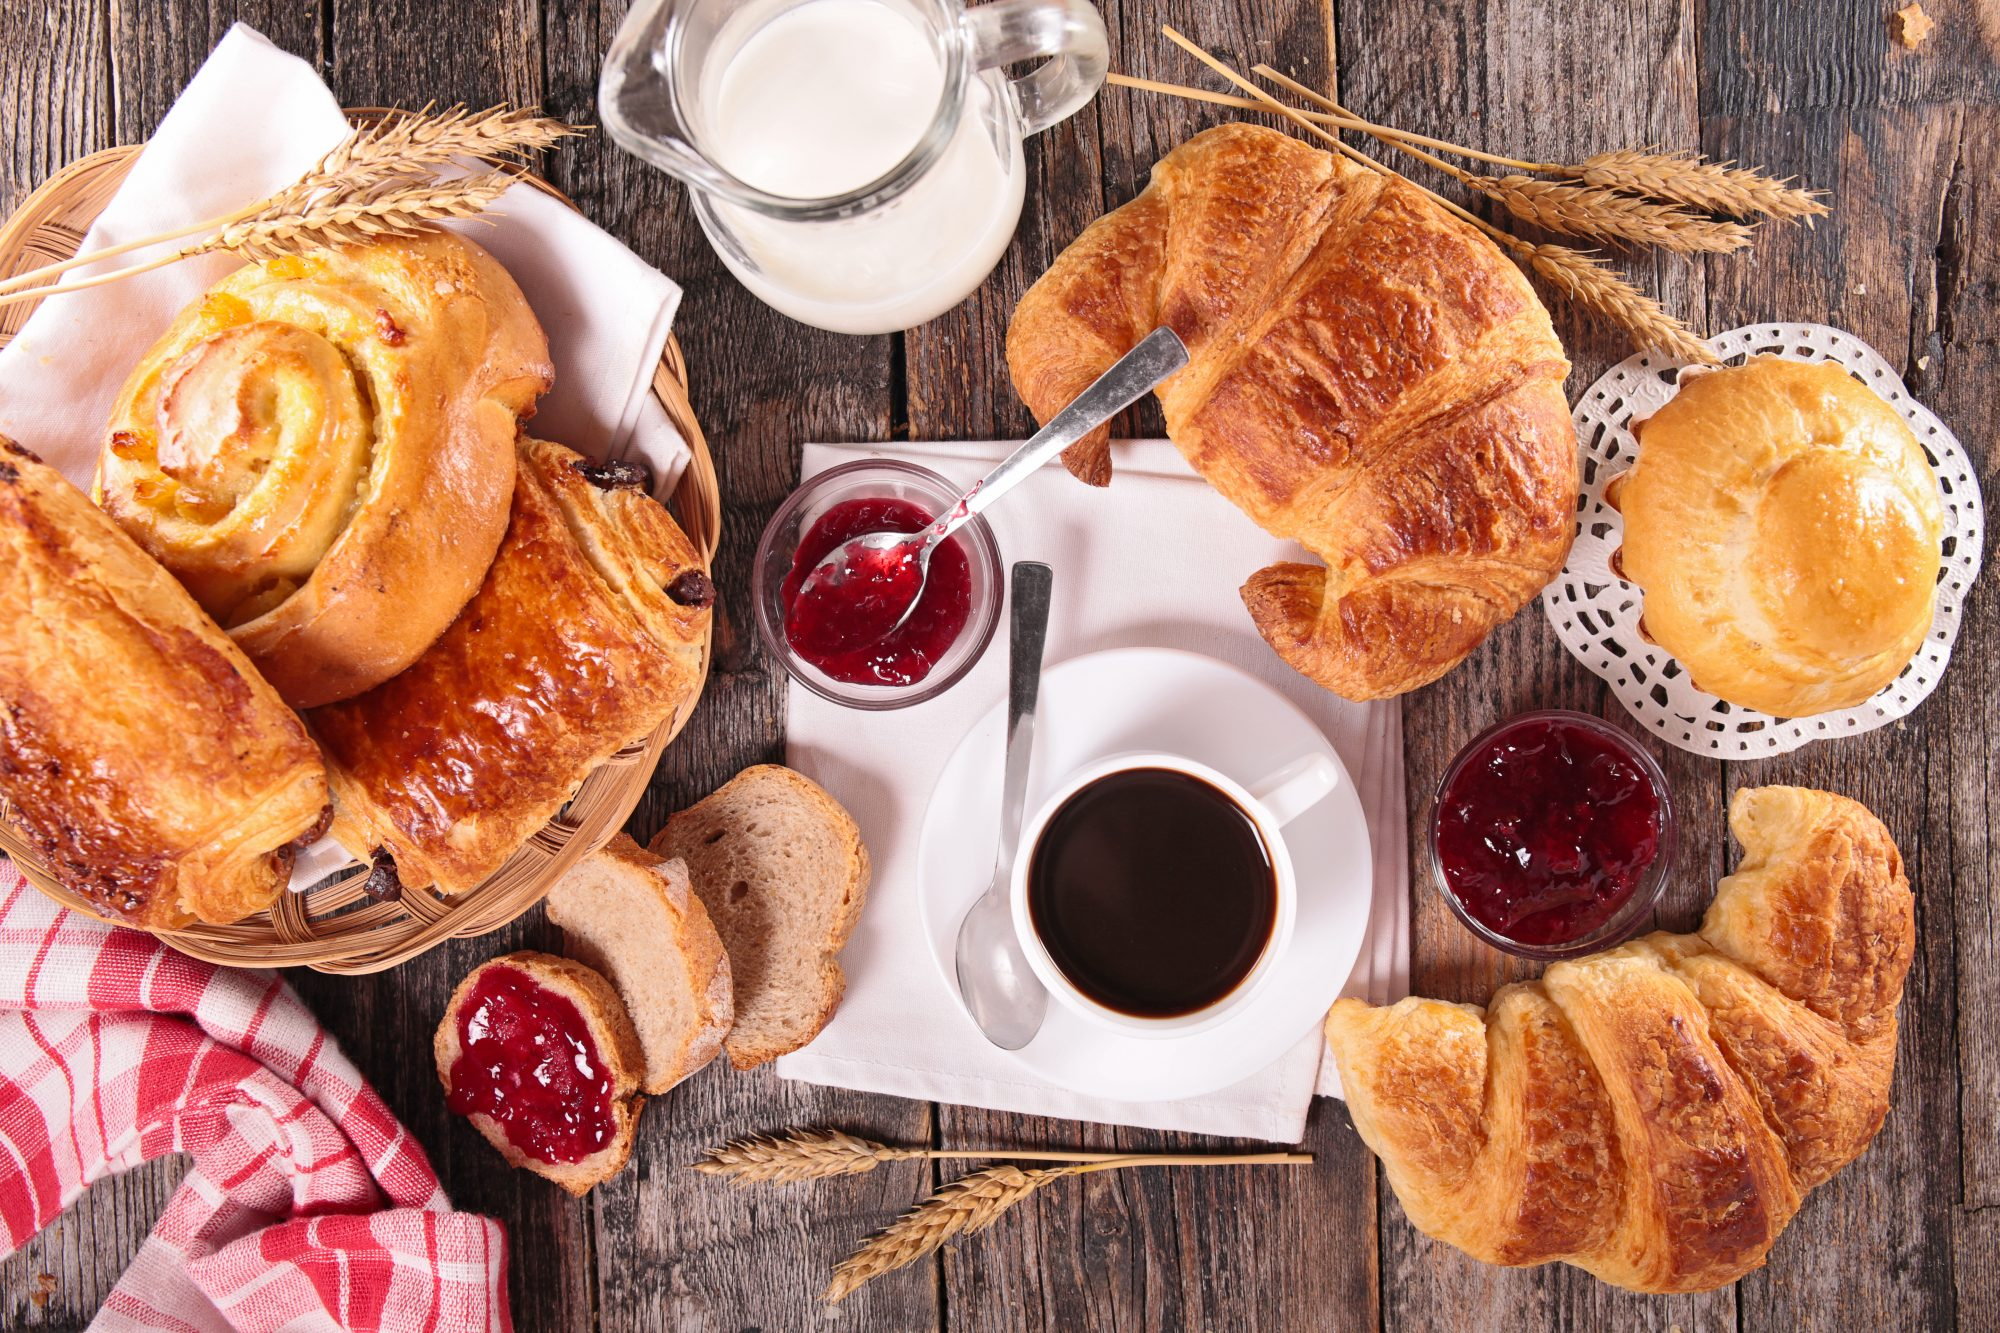 getty-breakfast-pastry-image